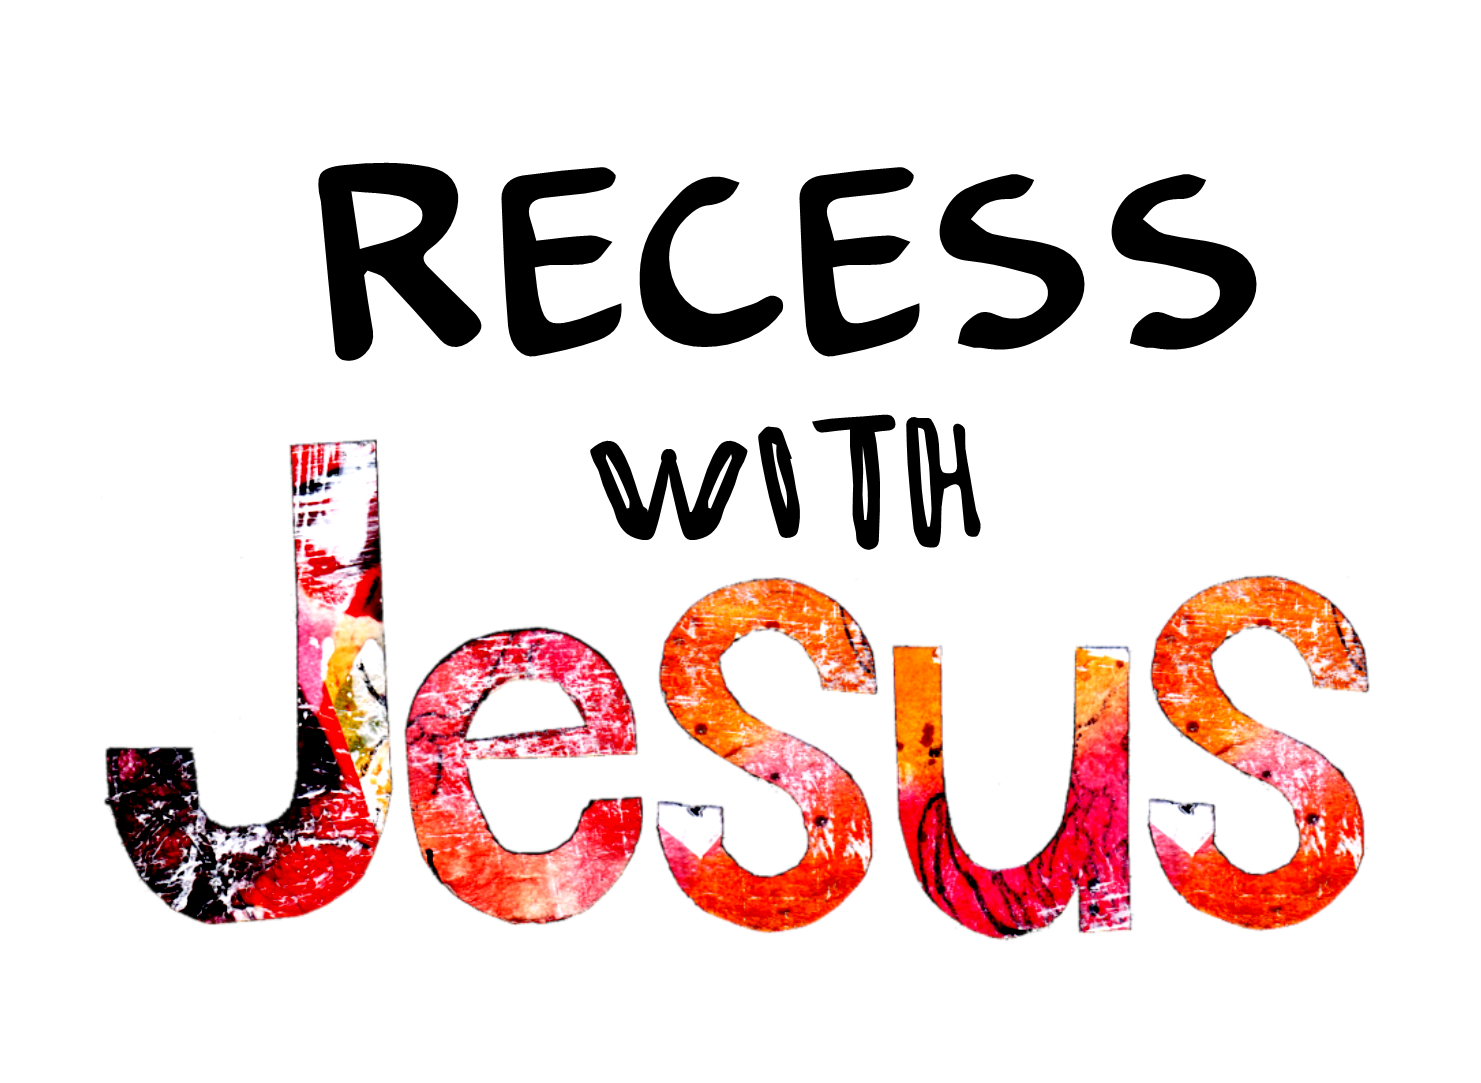 Recess With Jesus logo